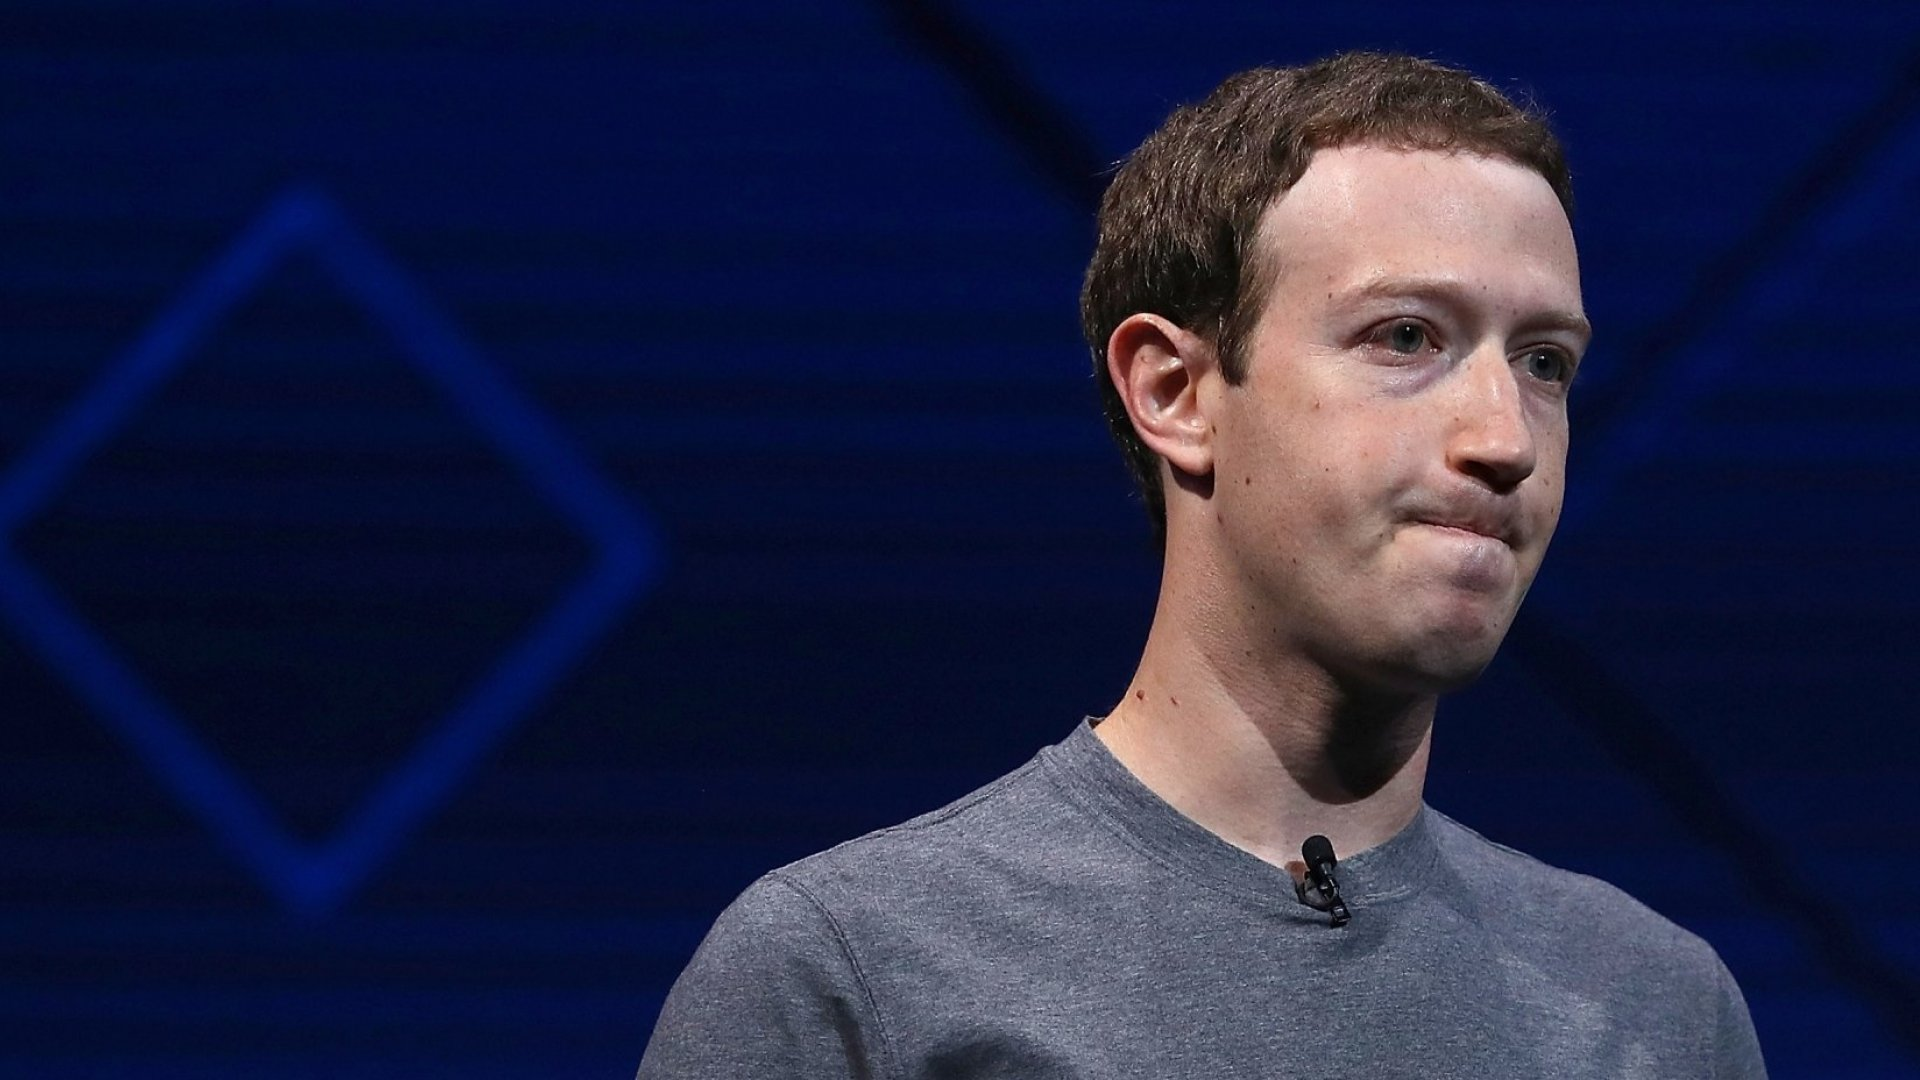 Facebook to Hire 3,000 Content Monitors as It Approaches 2 Billion Users